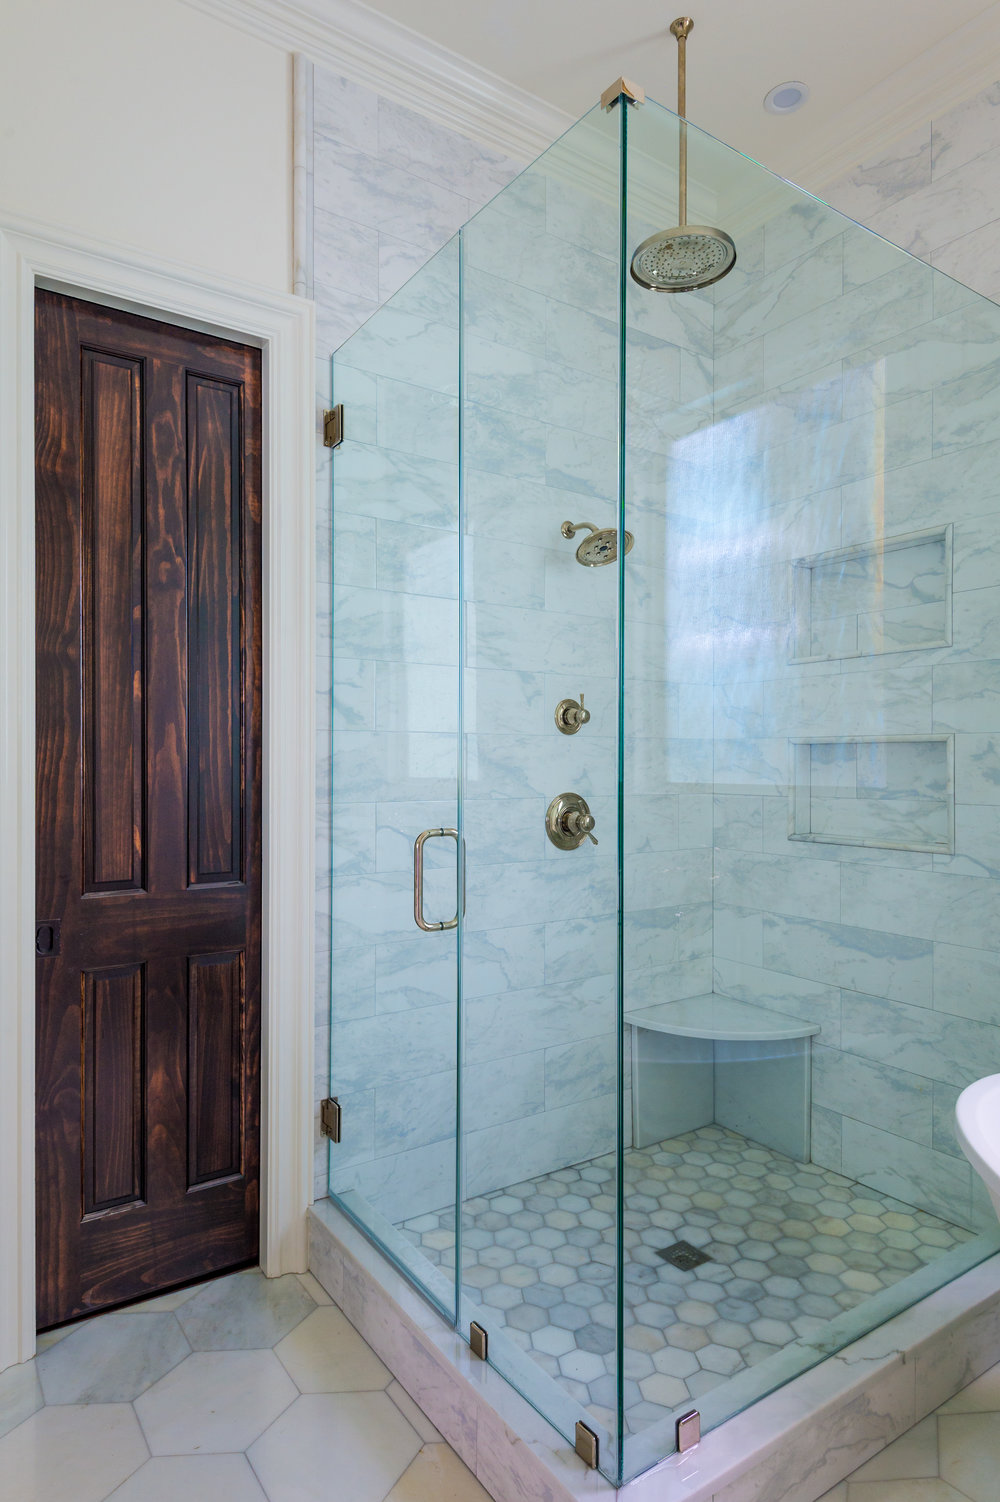 KHB Interiors details shower master bathroom new orleans metairie interior decorator .jpg